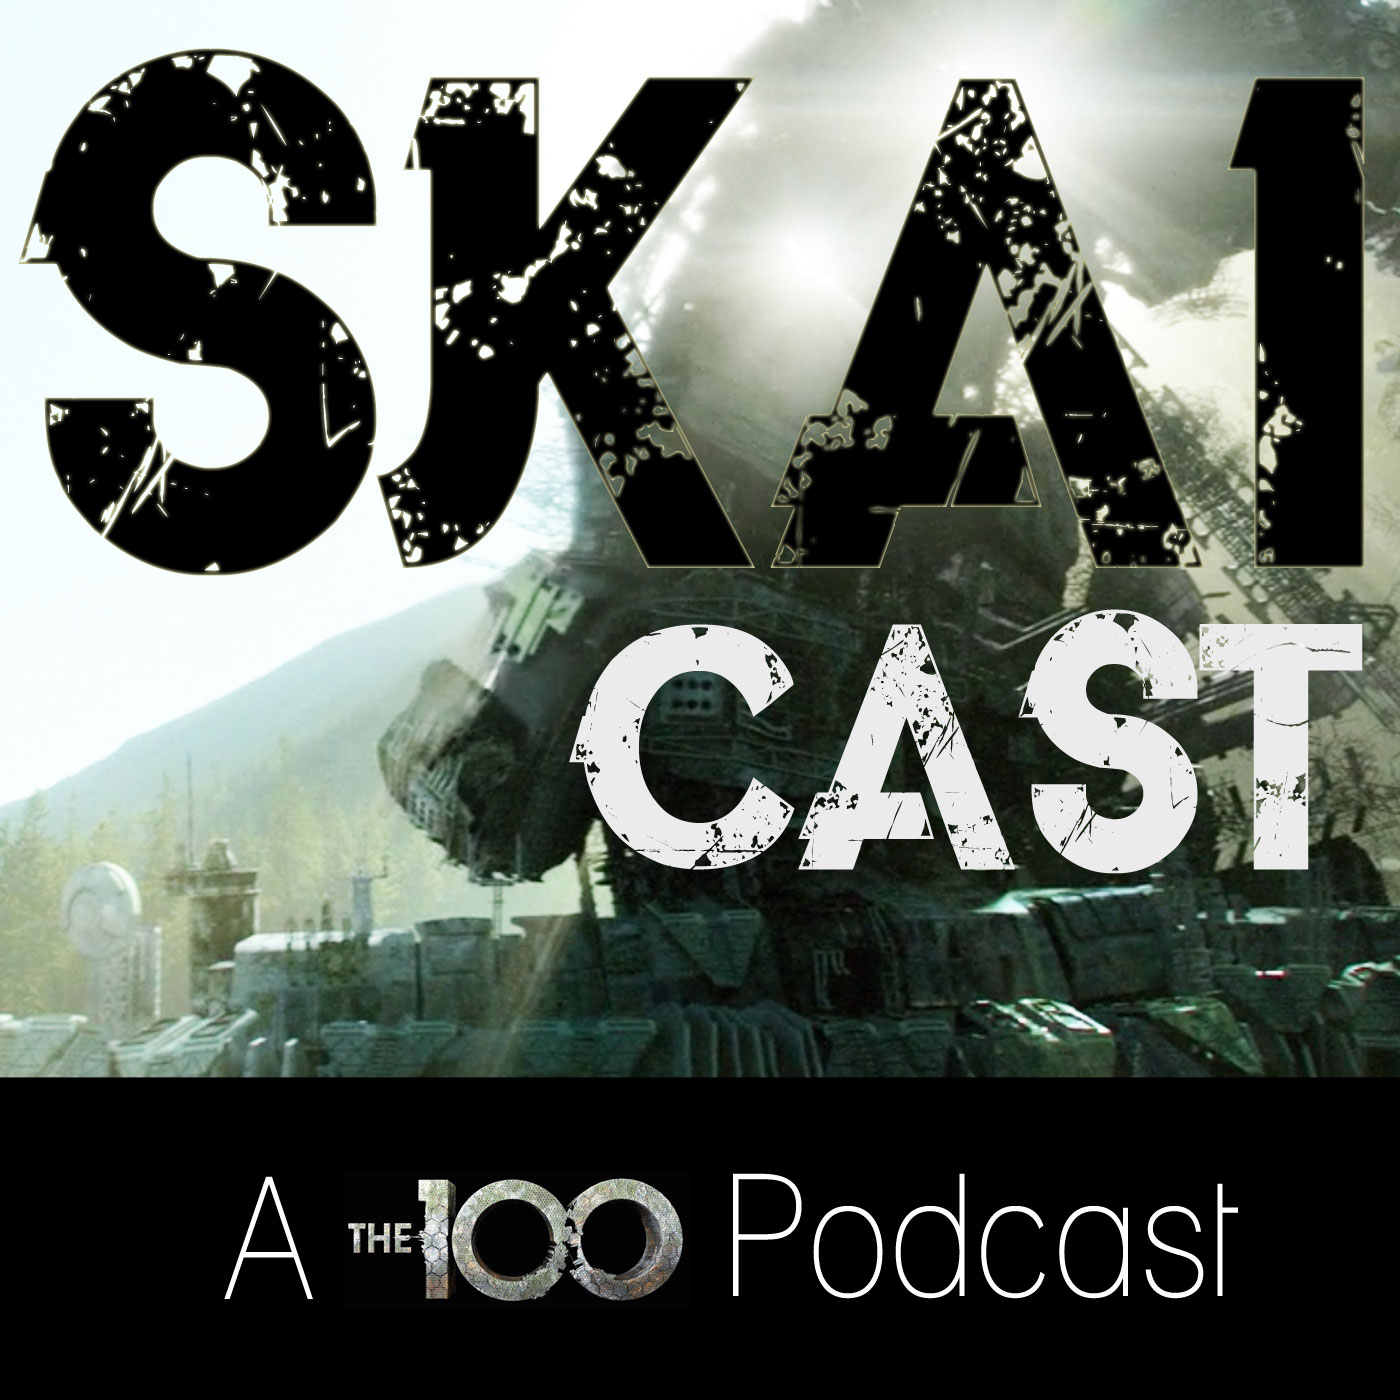 SkaiCast: The 100 Podcast